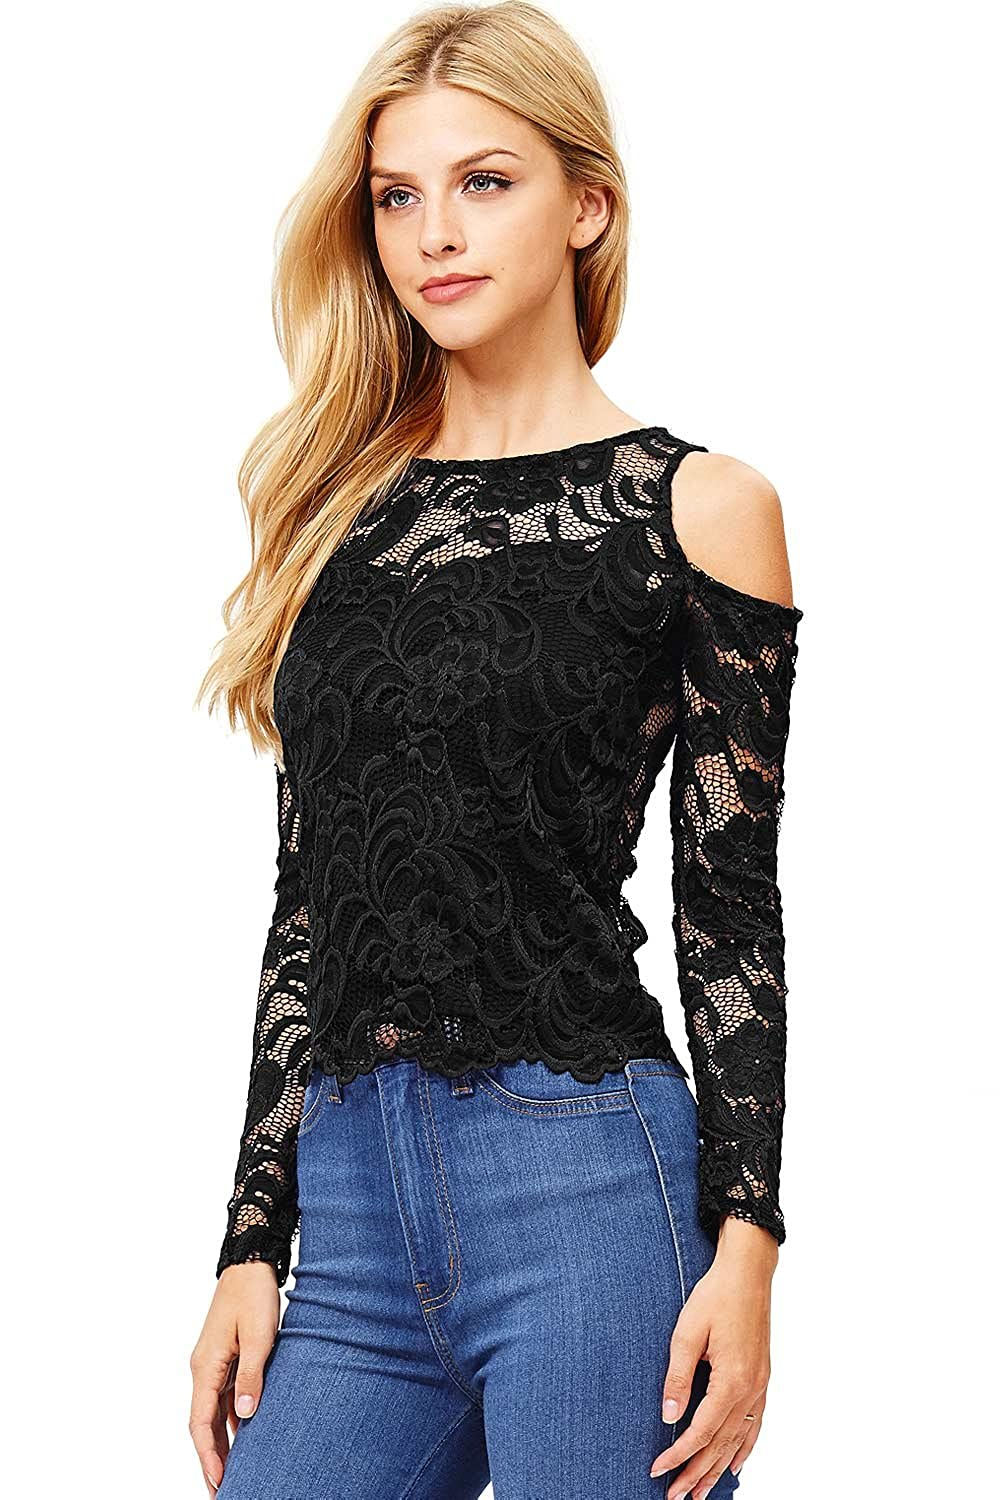 adda7650 Online Cheap wholesale Ambiance Womens Juniors Long Sleeve Lacey Crop Top  Blouses & Button-Down Shirts Suppliers